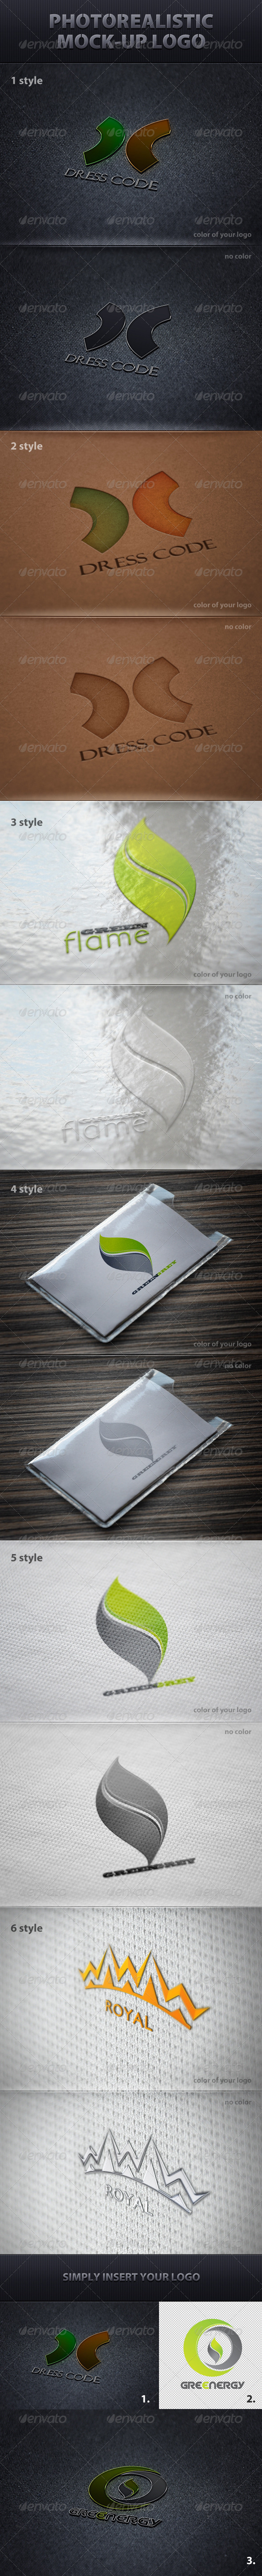 Photorealistic Mock-Up Logo - Logo Product Mock-Ups